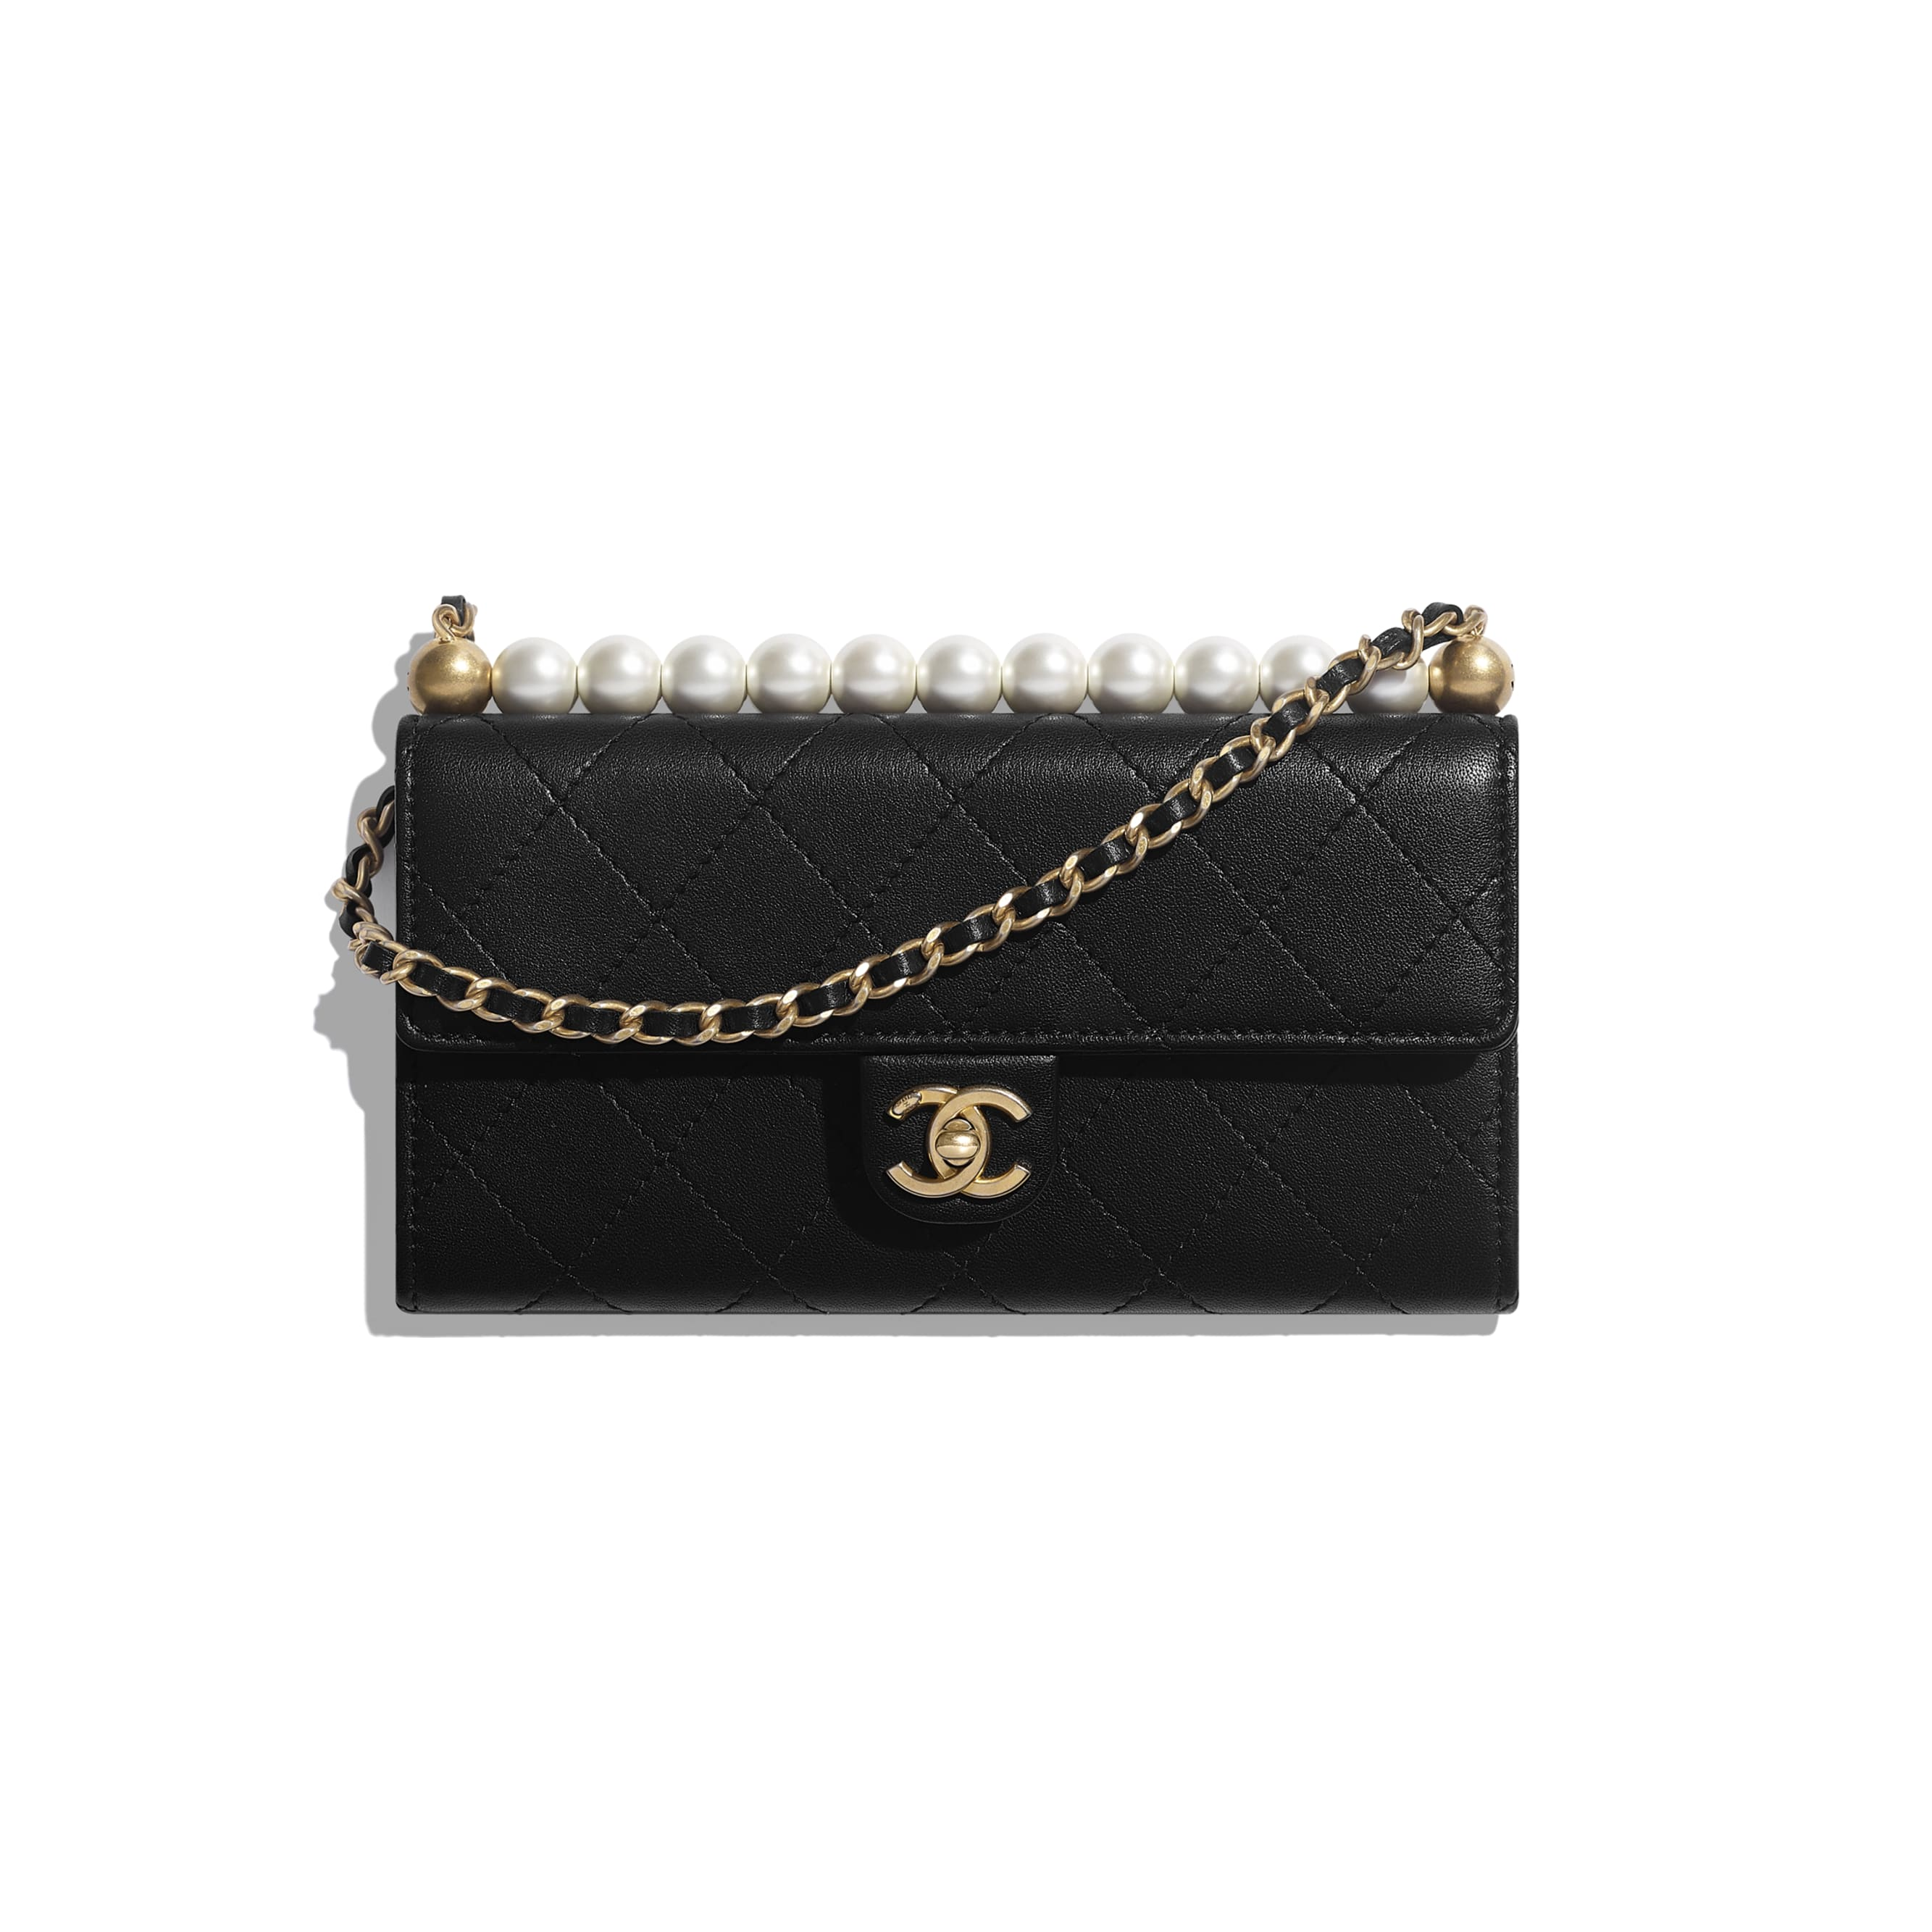 Clutch with Chain - Black - Goatskin, Imitation Pearls & Gold-Tone Metal - CHANEL - Default view - see standard sized version